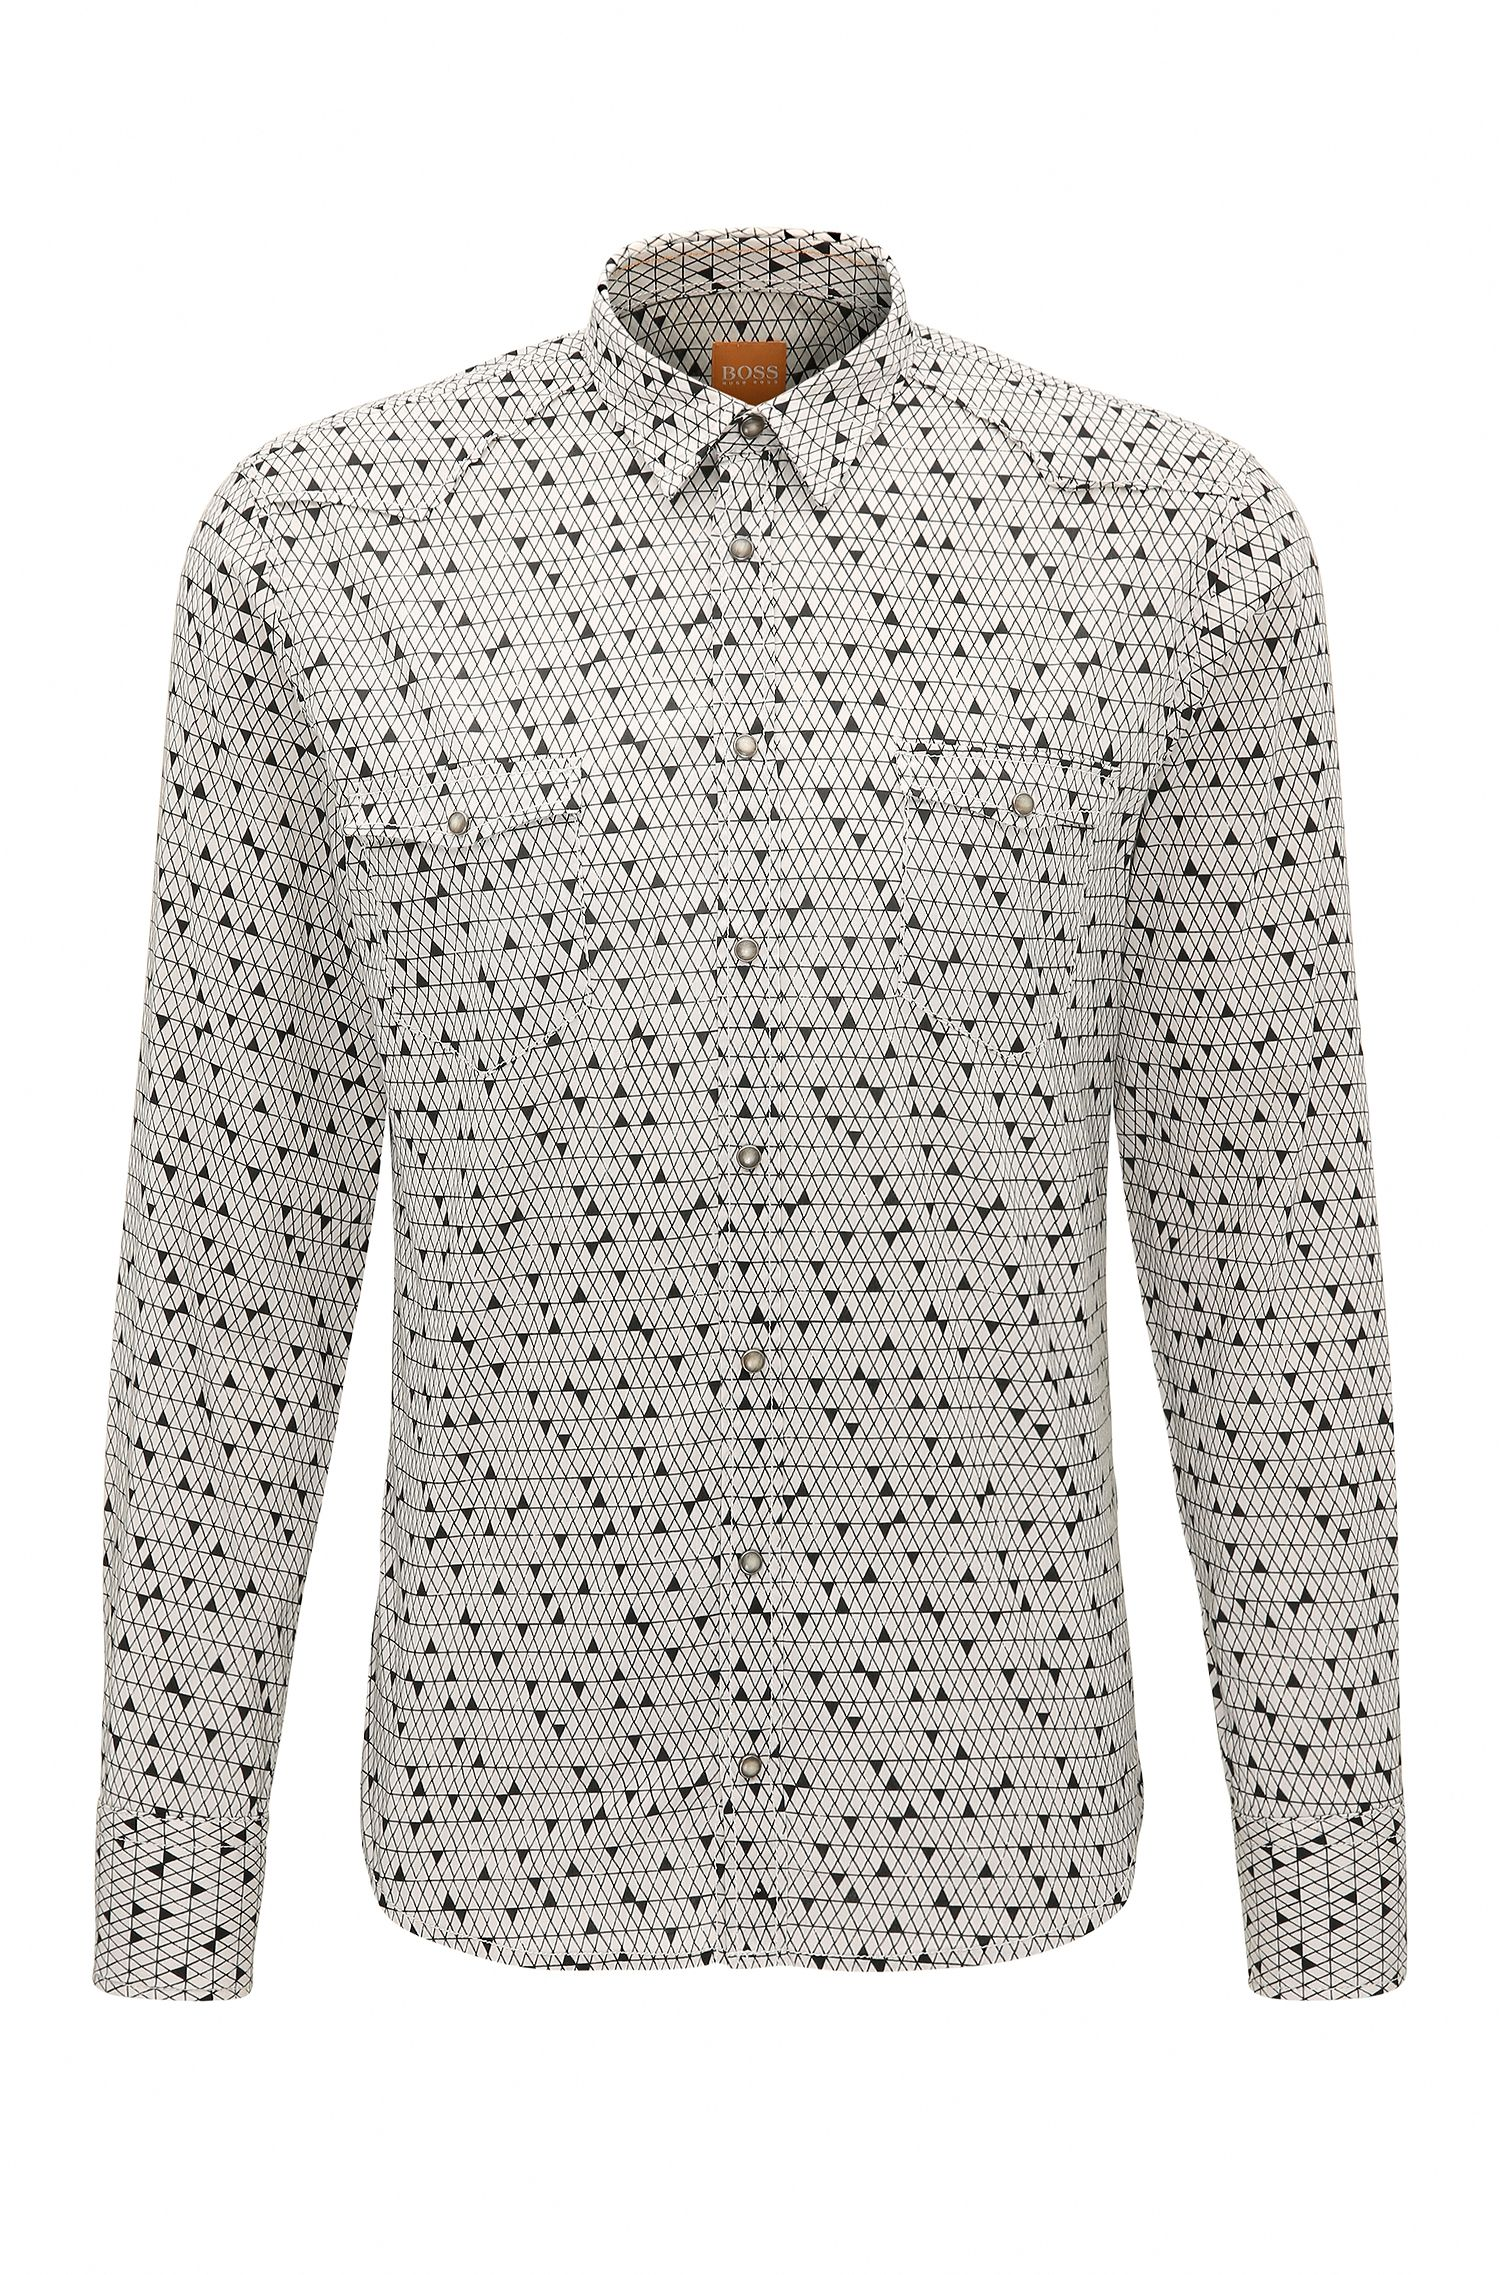 Slim-fit printed shirt in cotton blend